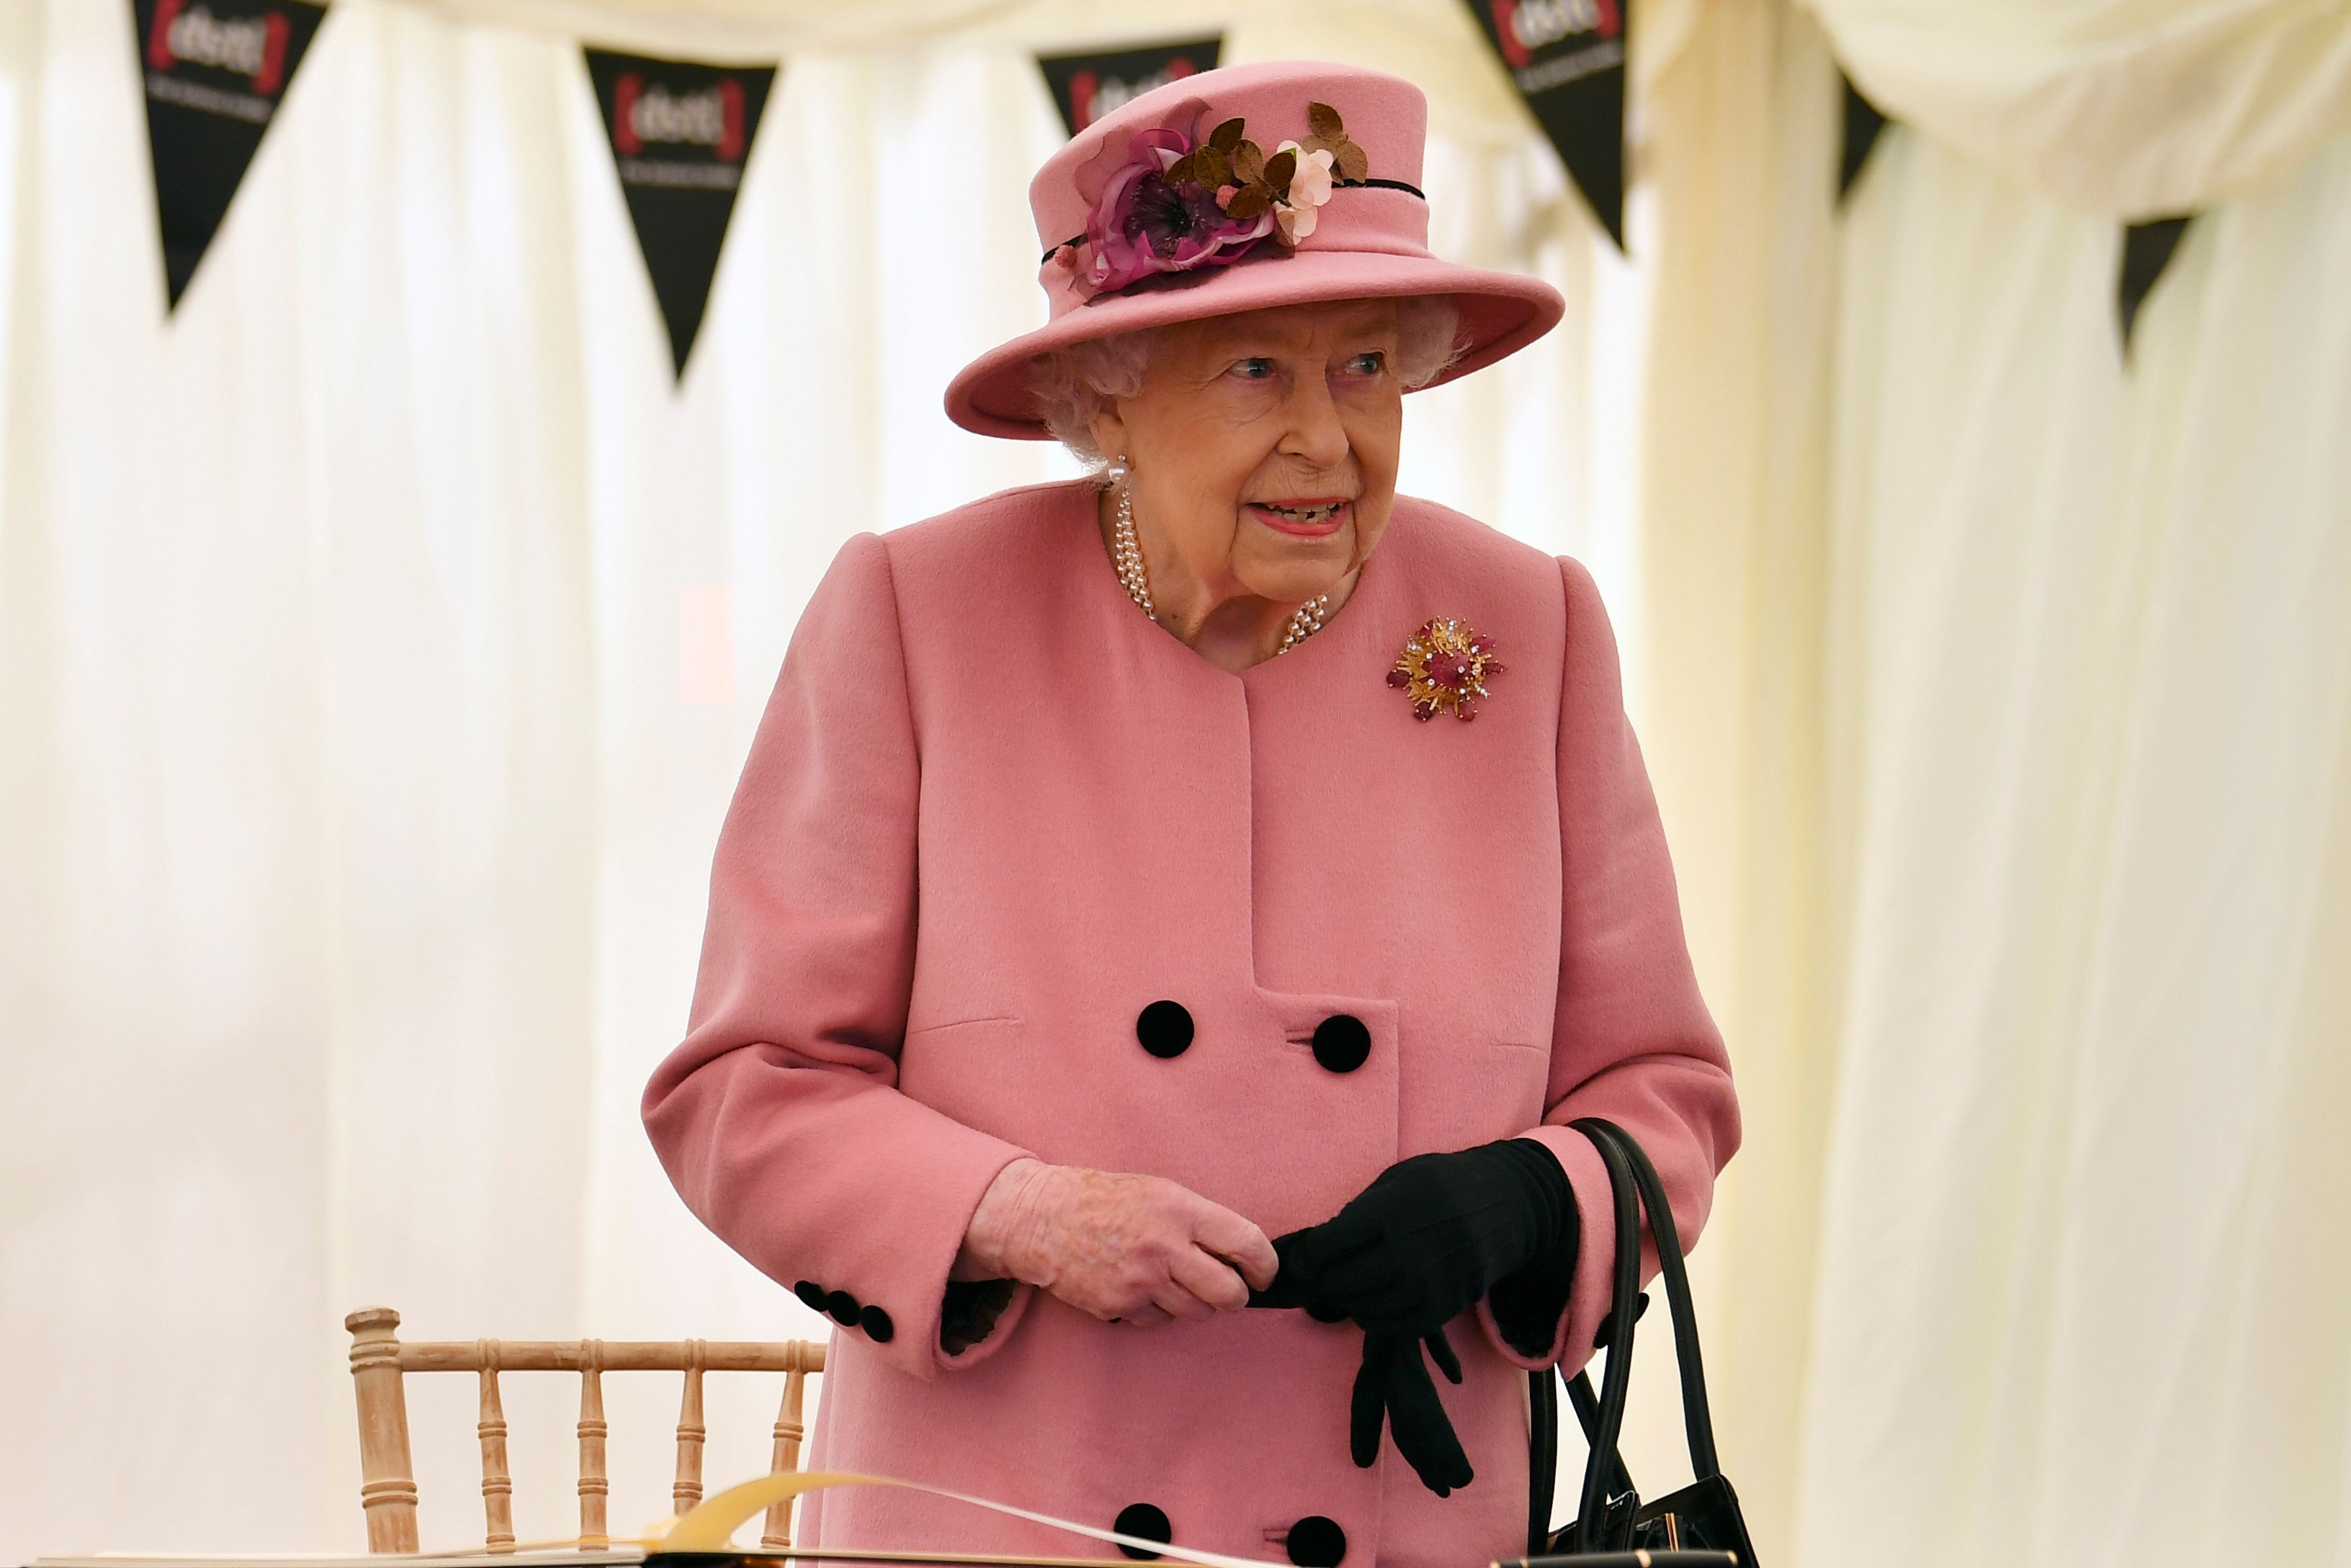 Queen Elizabeth II during her visit to the Defence Science and Technology Laboratory (Dstl) at Porton Down science park on October 15, 2020   Photo: Getty Images